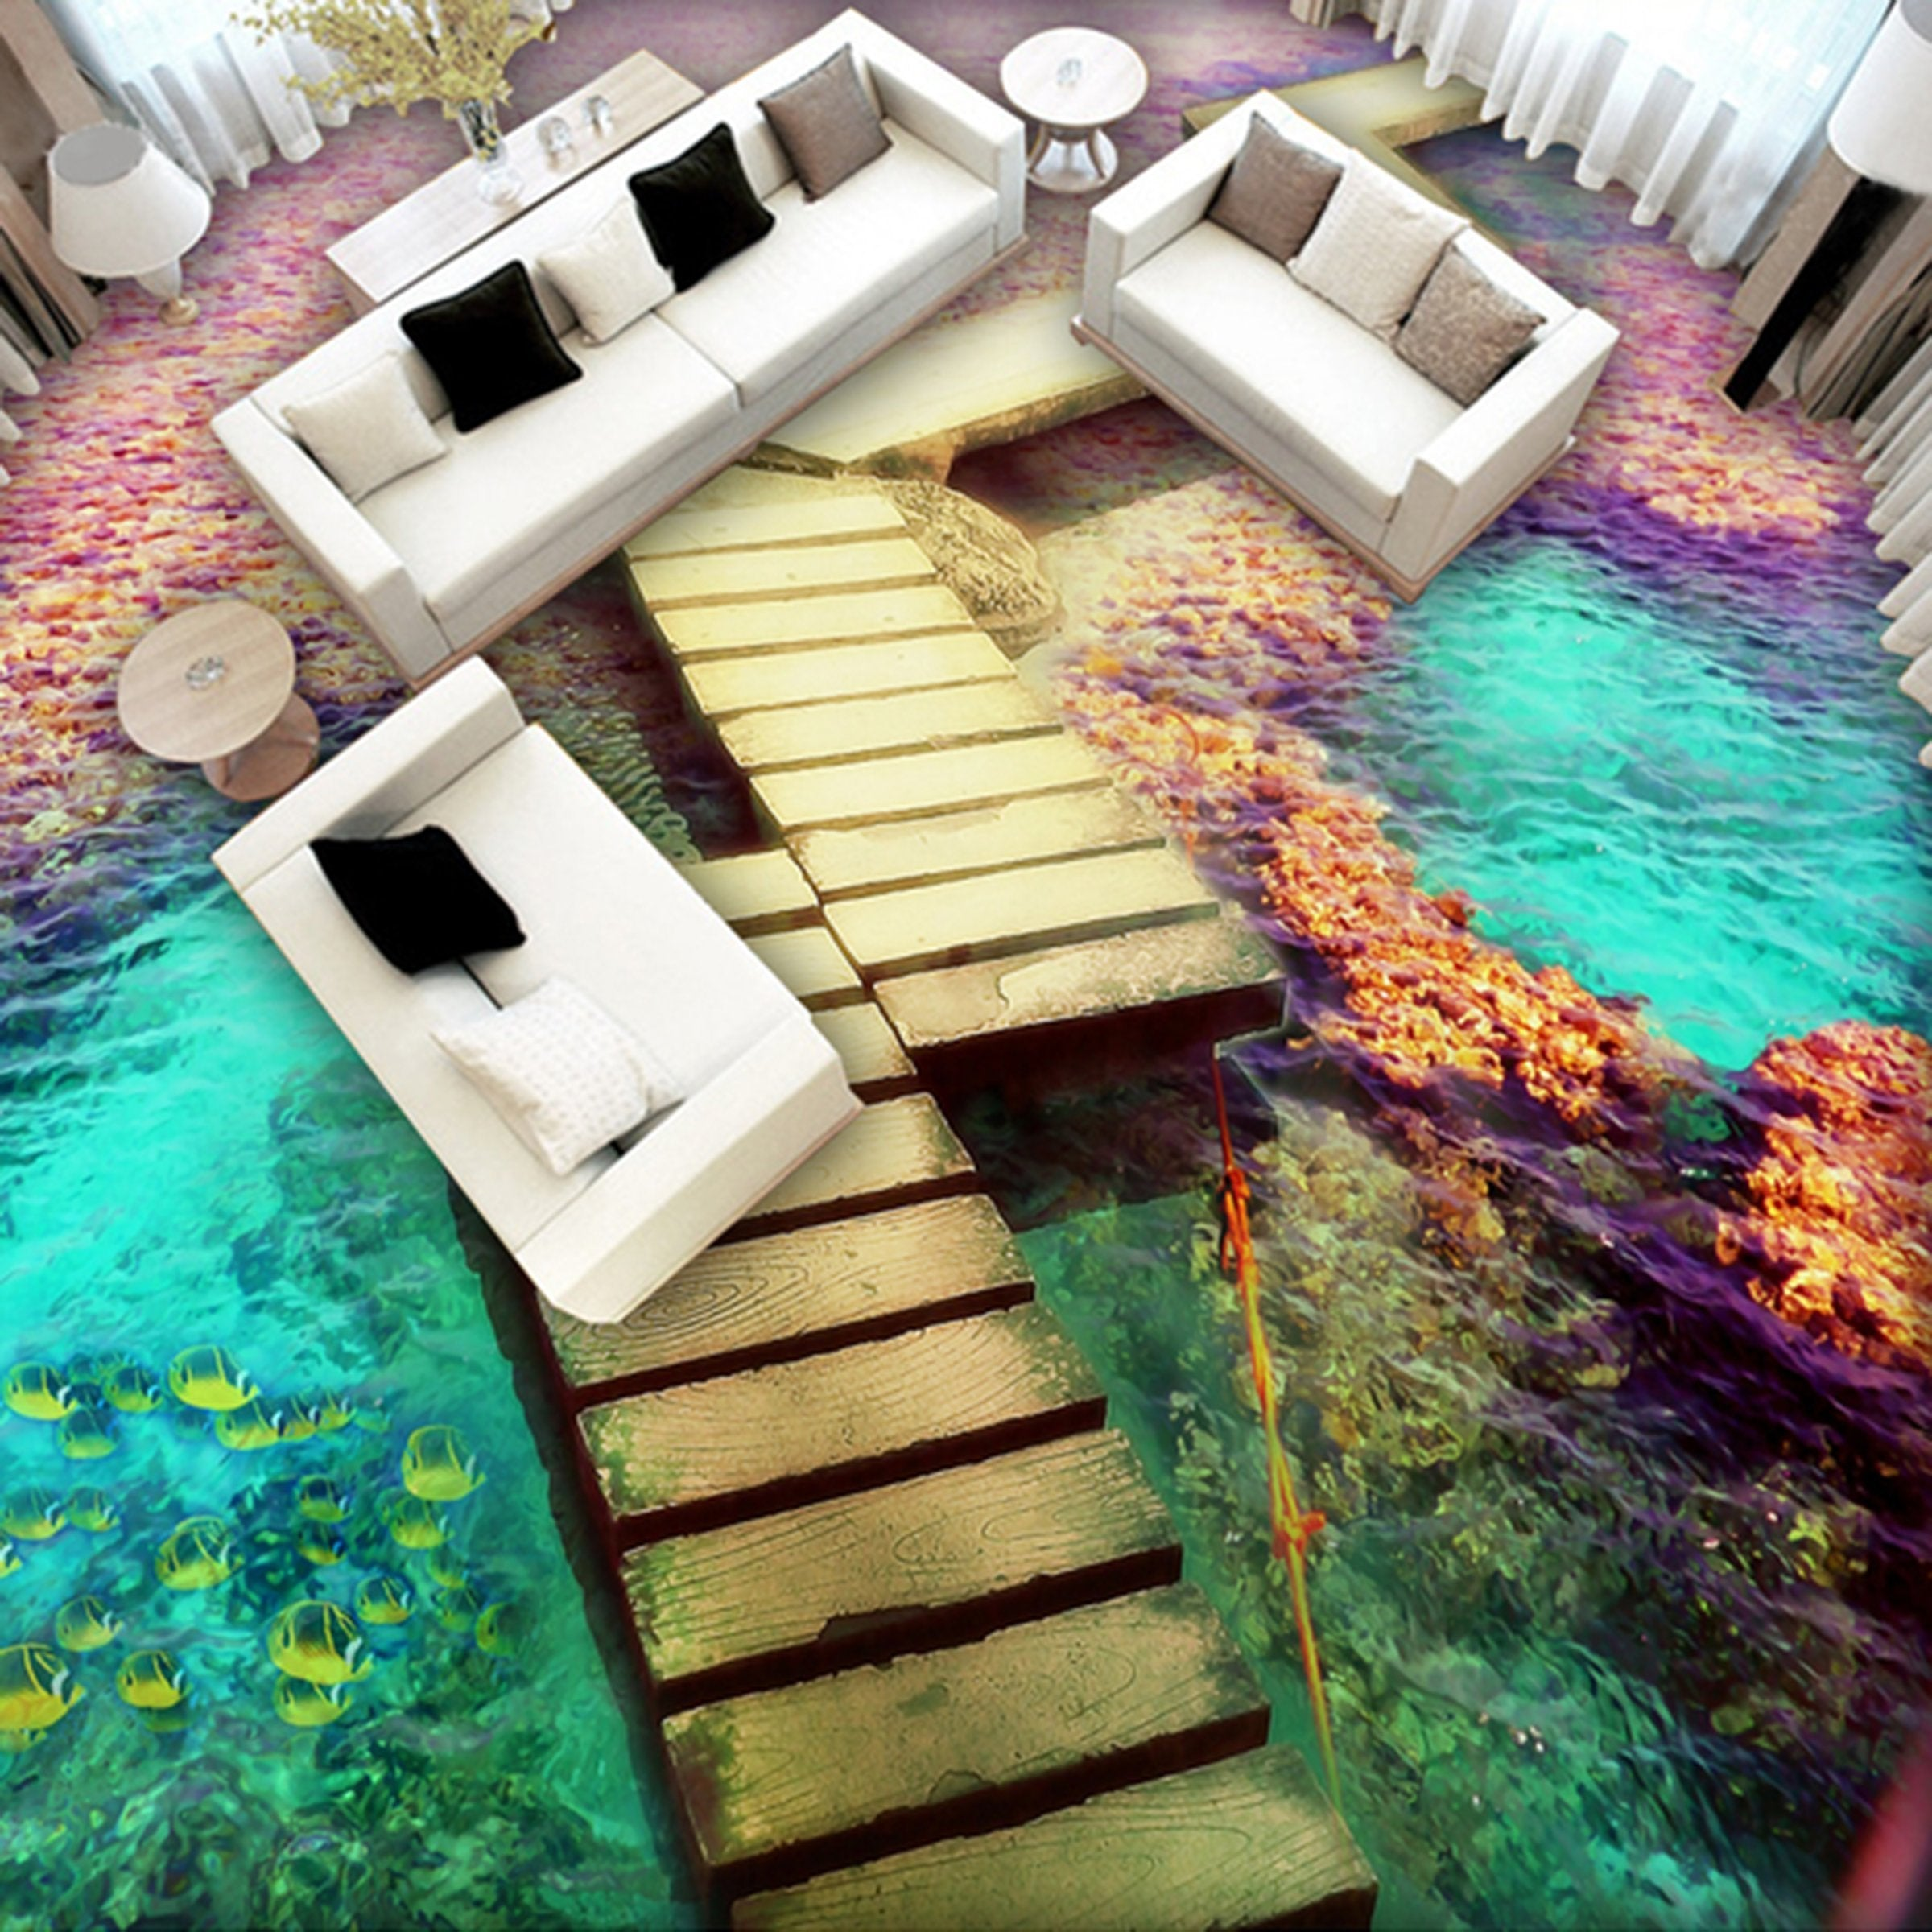 3D Ocean Wooden Bridge WG035 Floor Mural